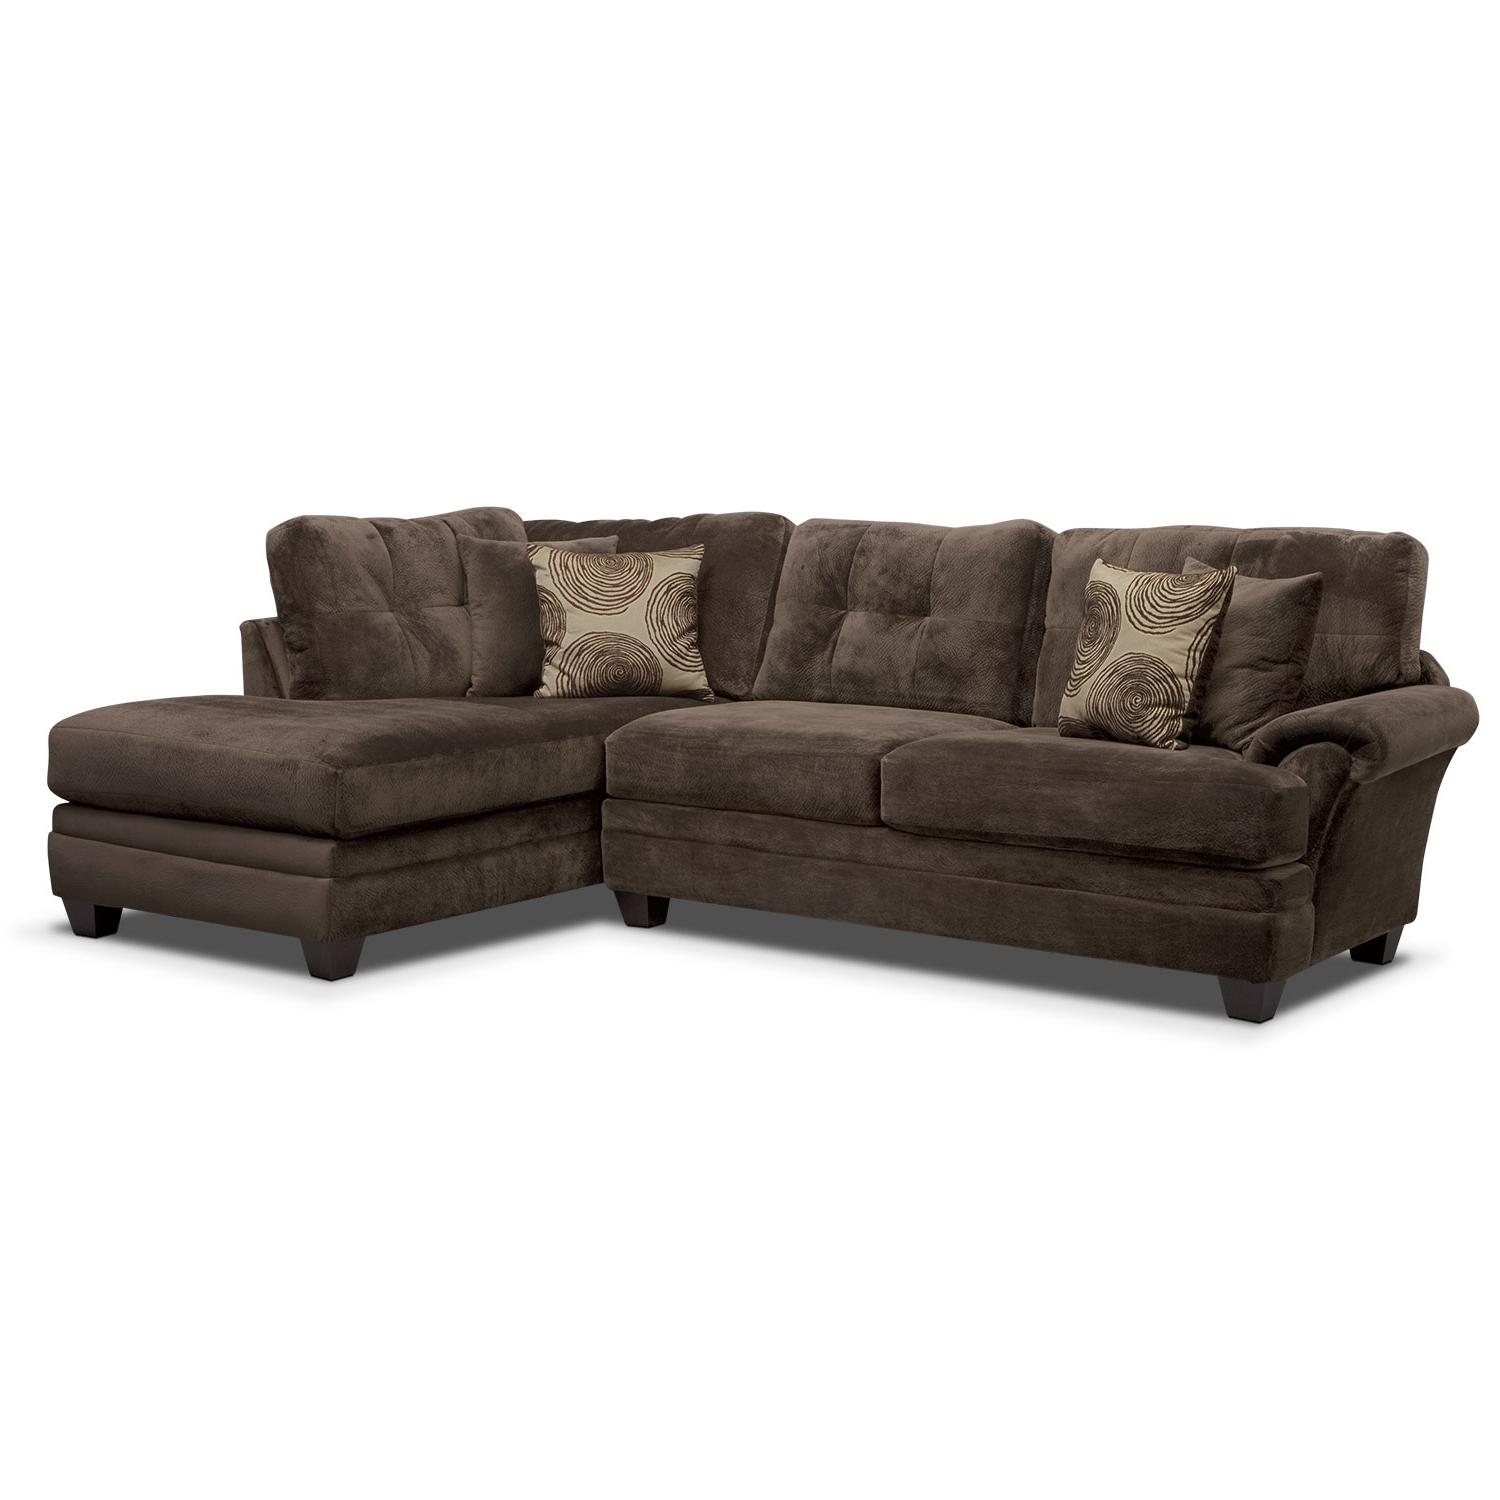 Right Facing Chaise Sectionals Inside Most Recently Released Cordelle 2 Piece Right Facing Chaise Sectional – Chocolate (View 12 of 15)